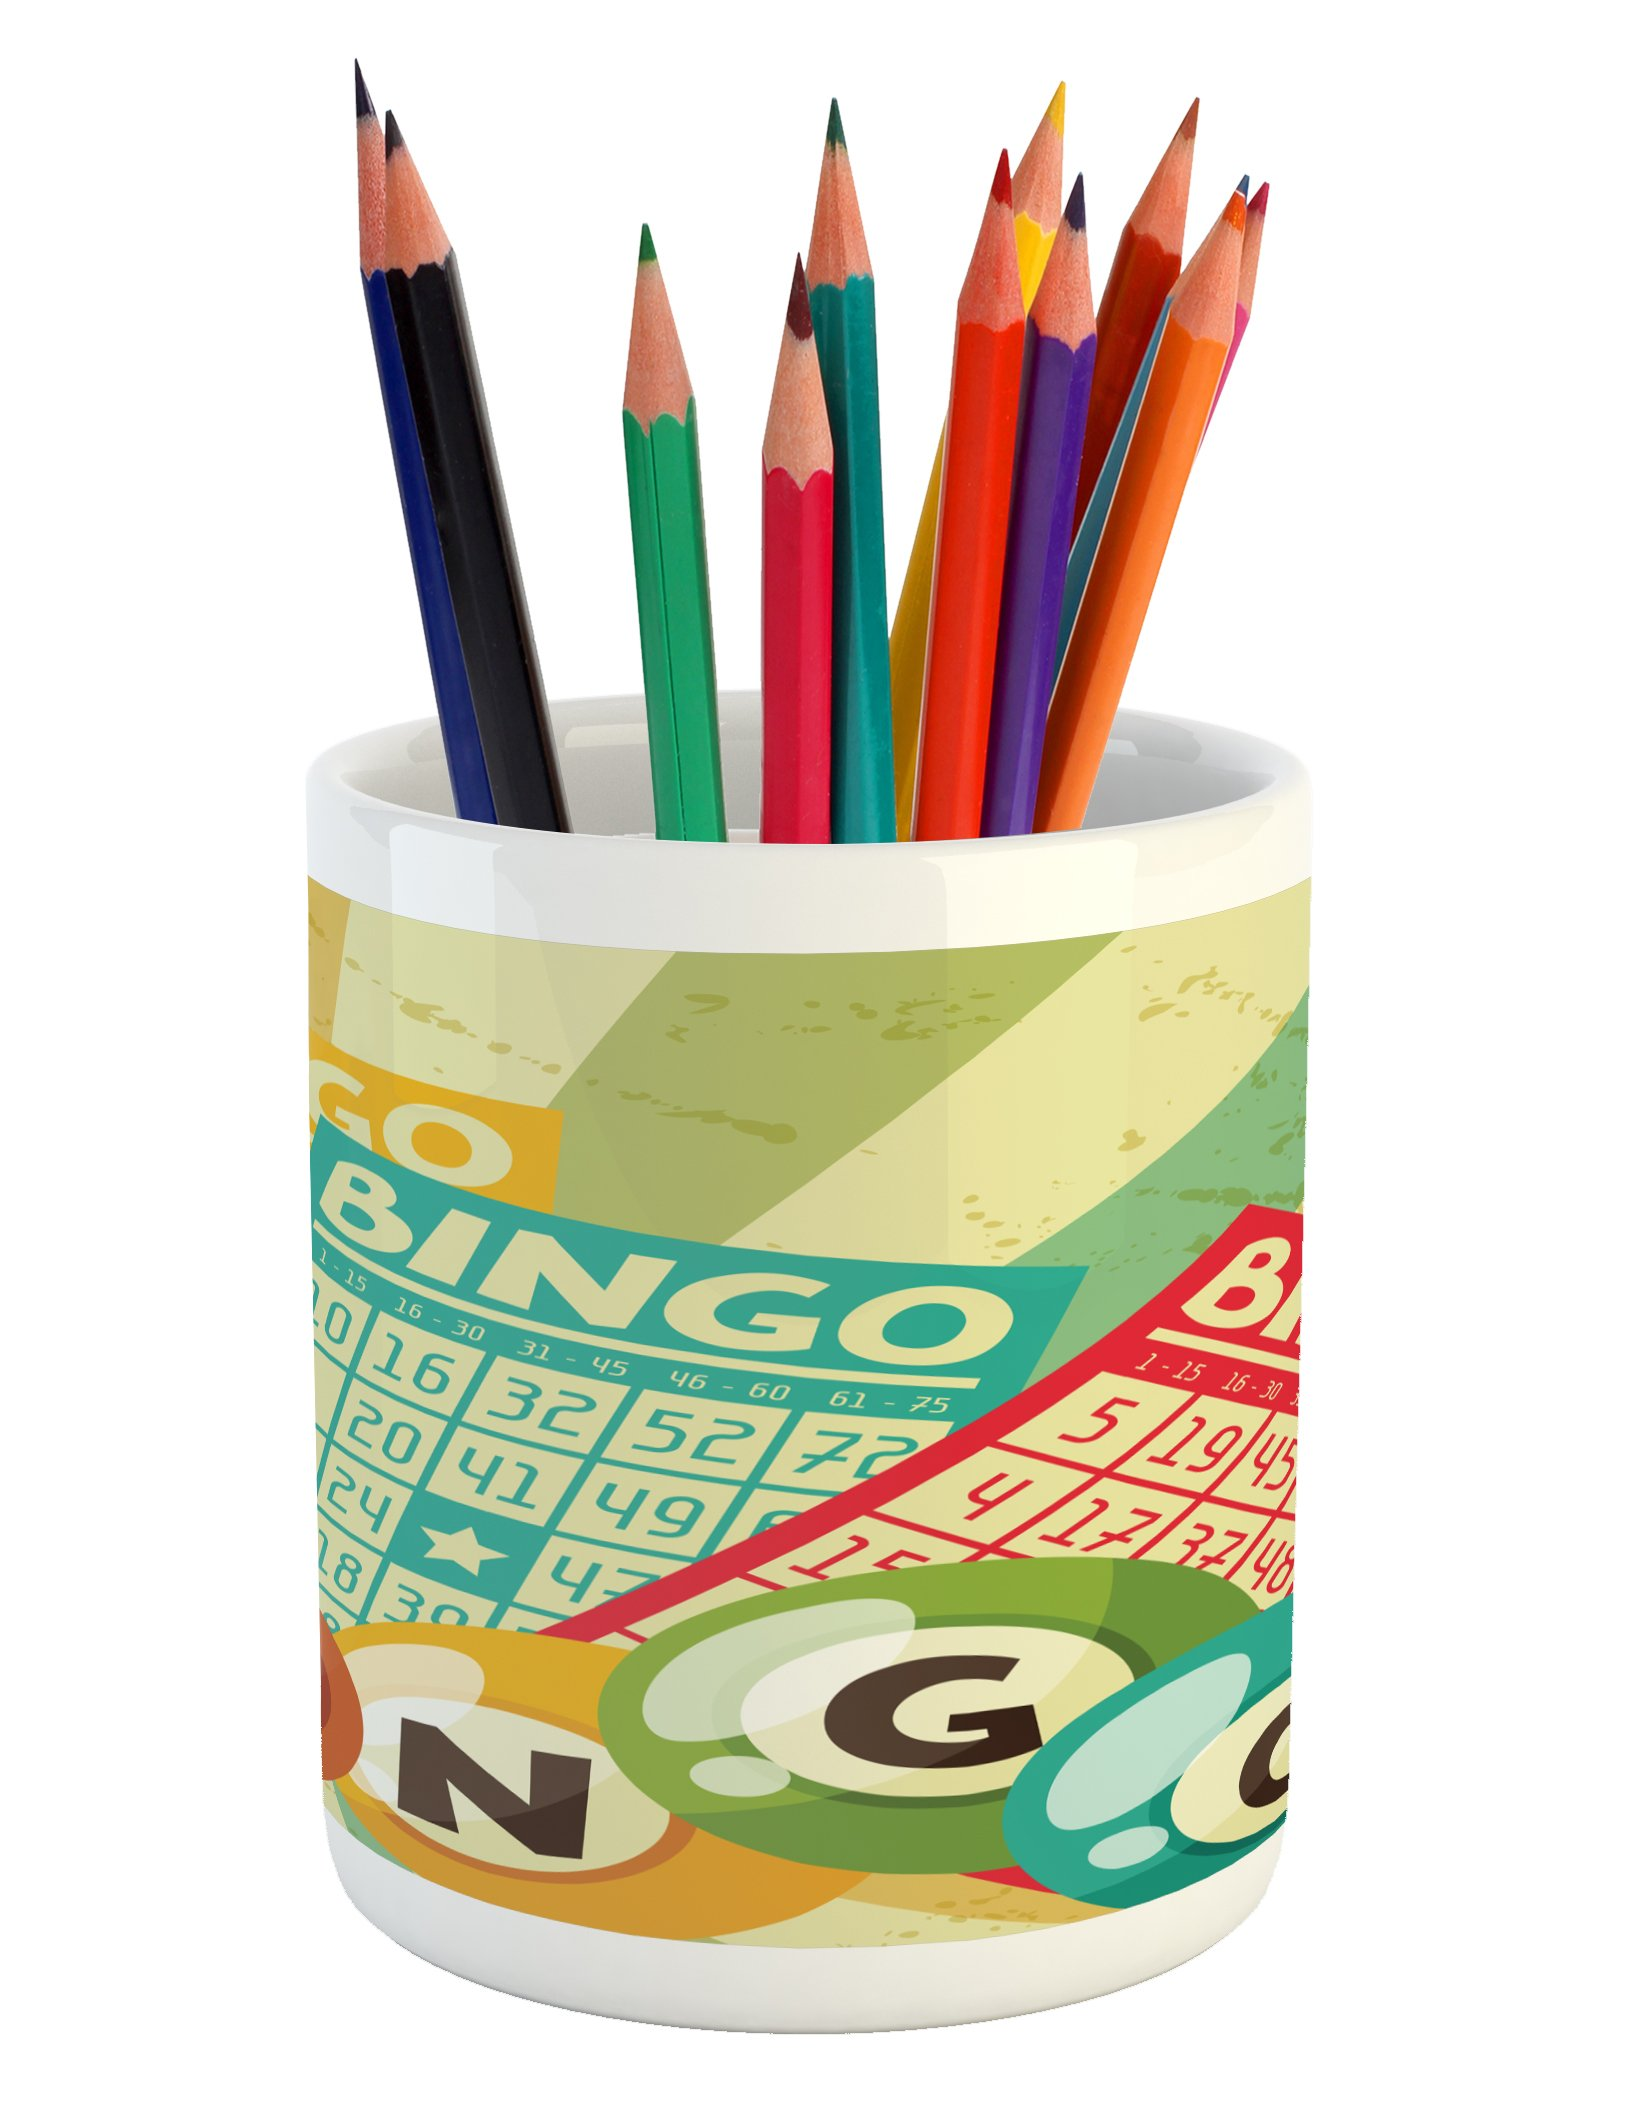 Ambesonne Vintage Pencil Pen Holder, Bingo Game with Ball and Cards Pop Art Stylized Lottery Hobby Celebration Theme, Printed Ceramic Pencil Pen Holder for Desk Office Accessory, Multicolor by Ambesonne